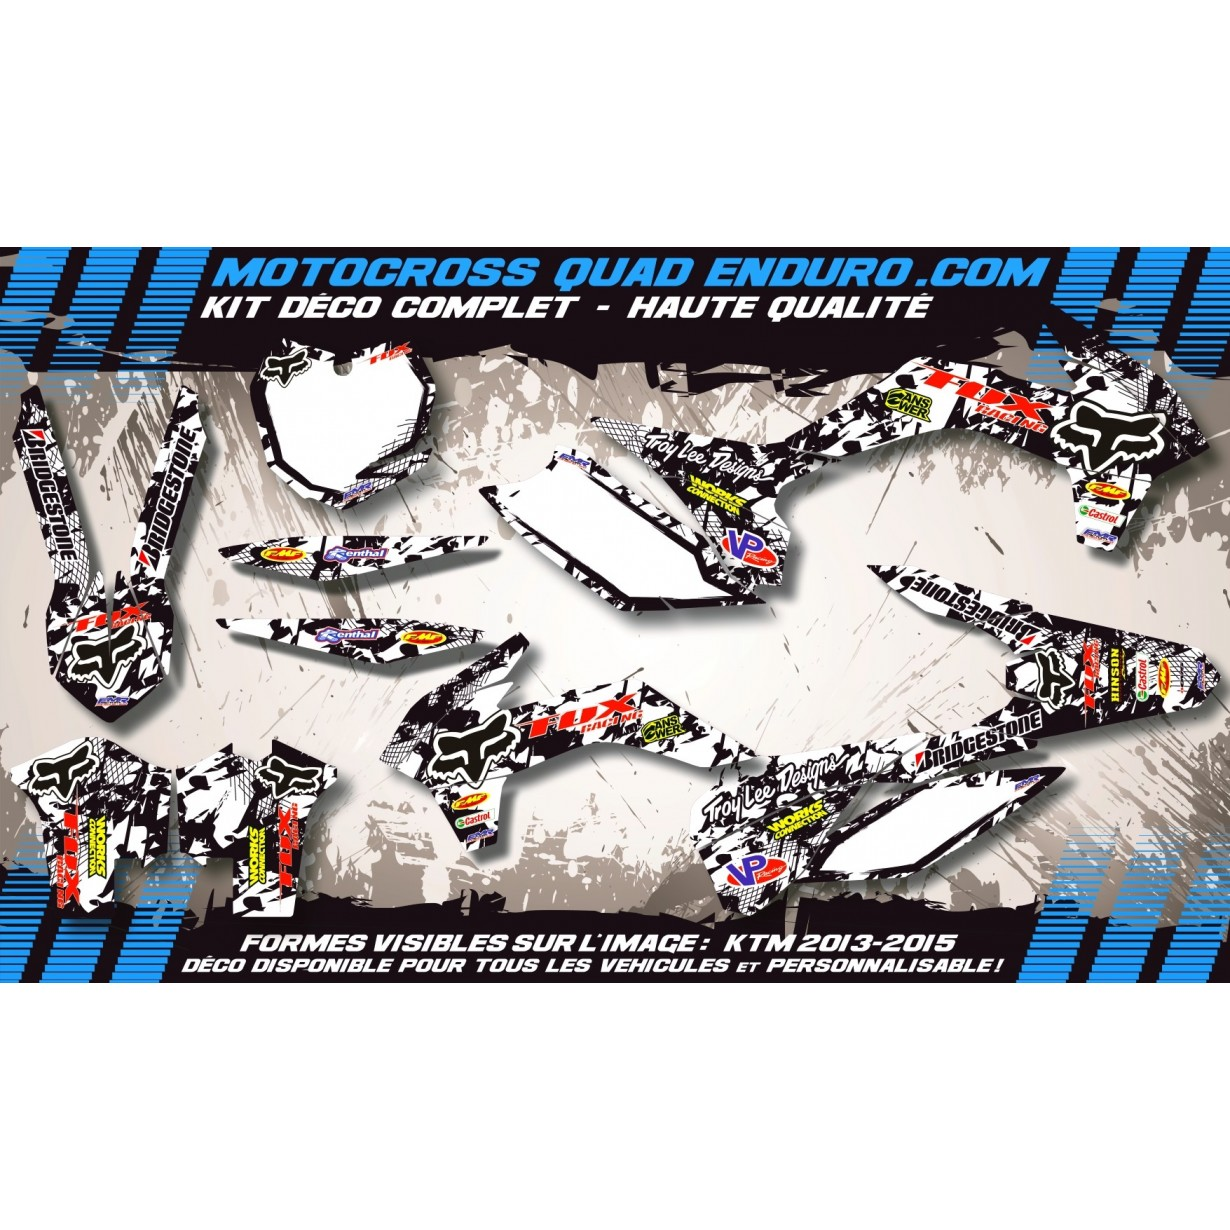 KIT DÉCO Perso 450 KXF 2012 FOX MA9F